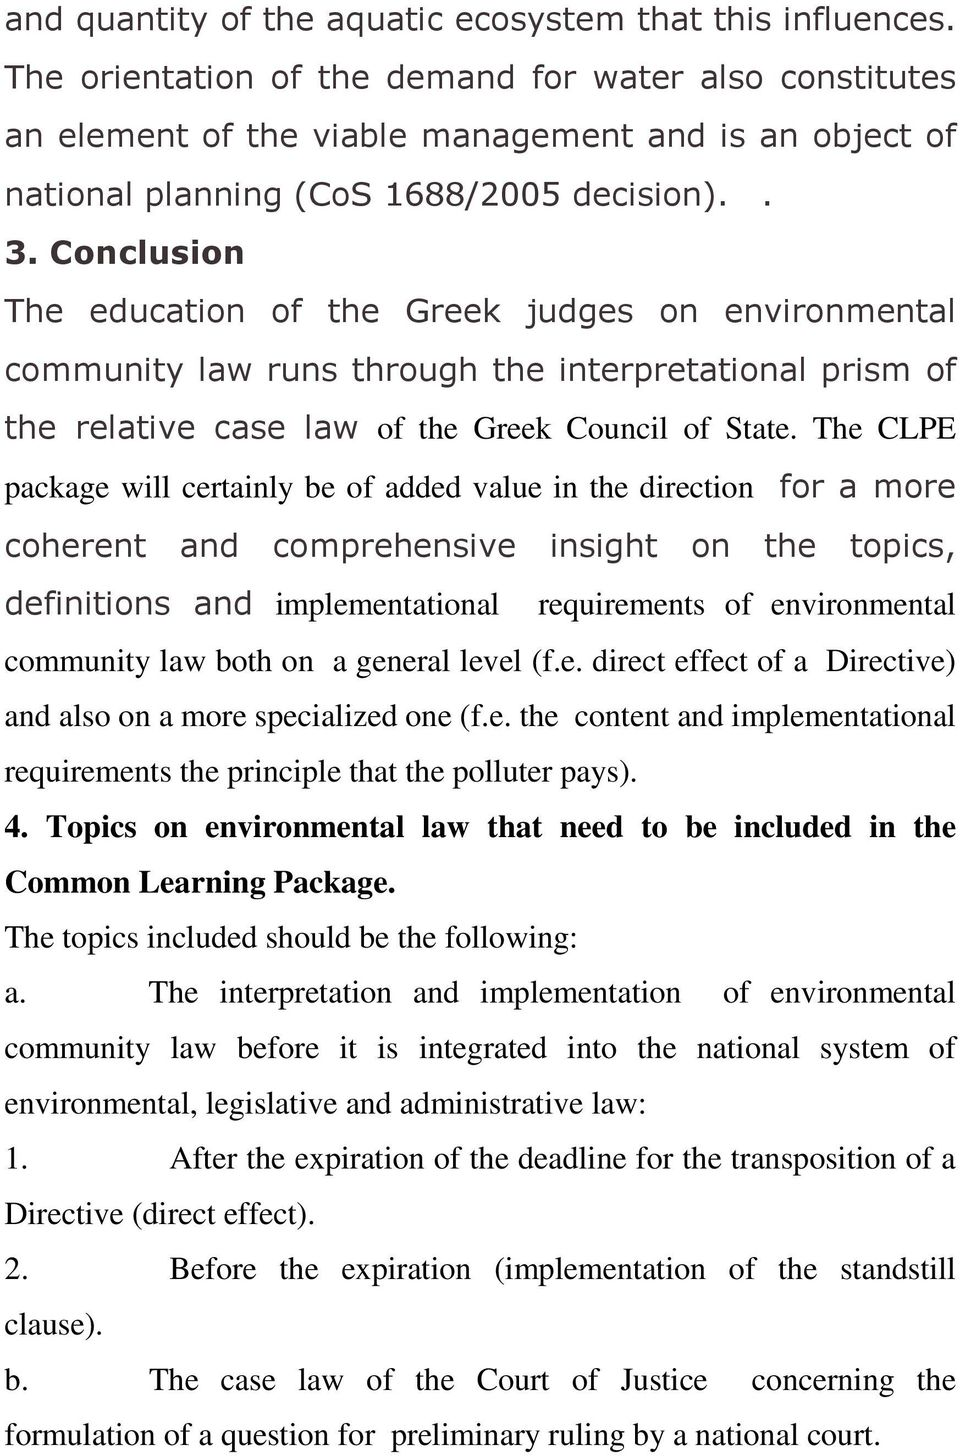 Conclusion The education of the Greek judges on environmental community law runs through the interpretational prism of the relative case law of the Greek Council of State.